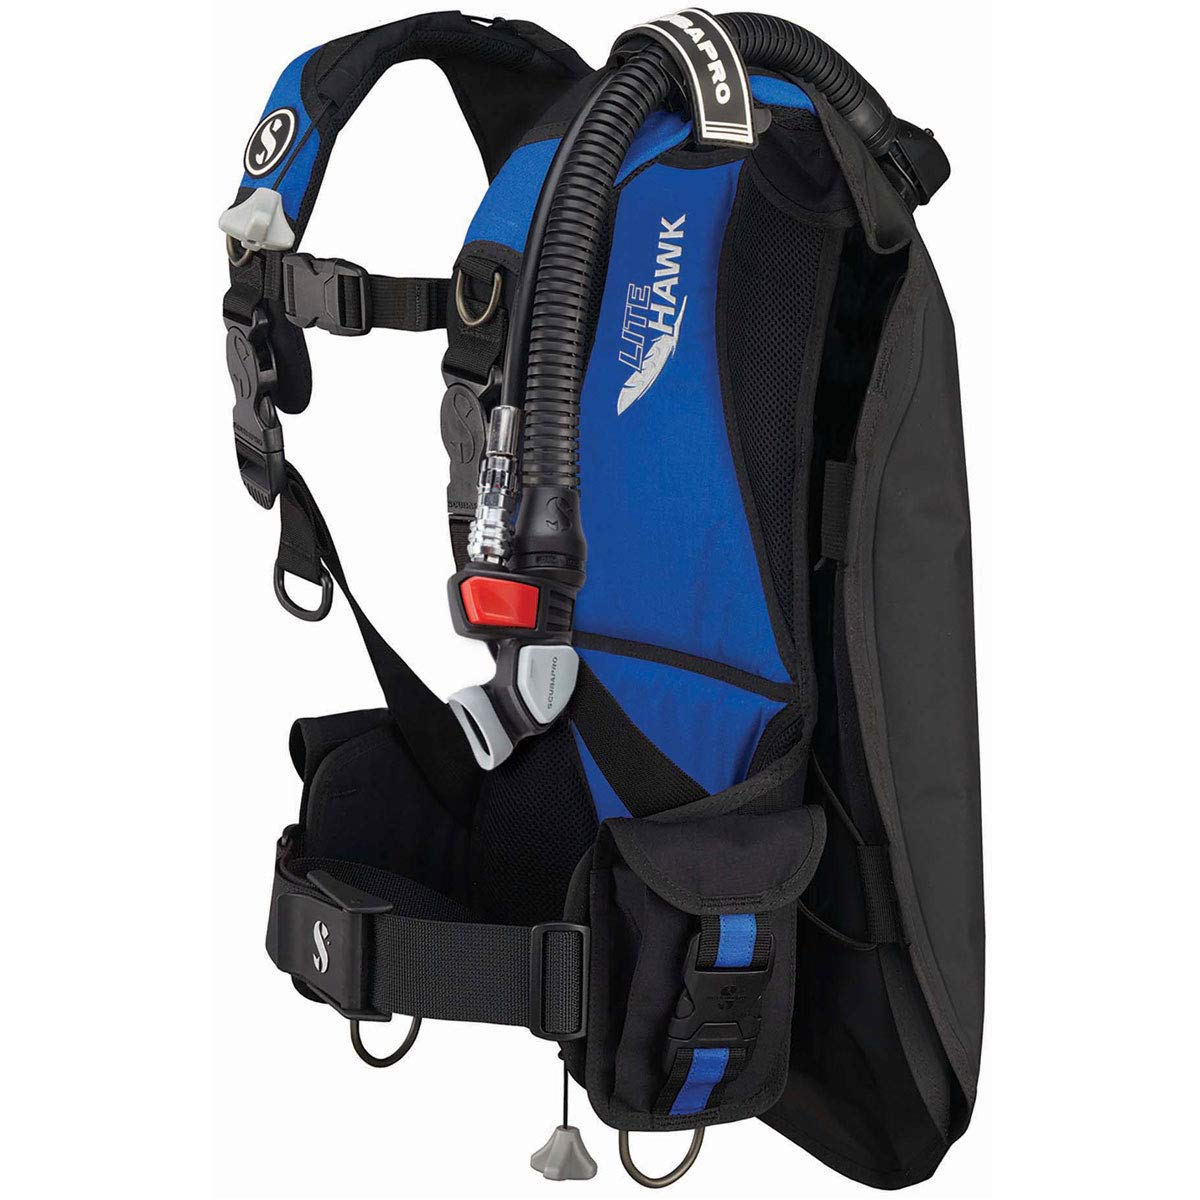 Scubapro Litehawk BCD with Air 2 (X-Large / 2X-Large, Black/Blue)